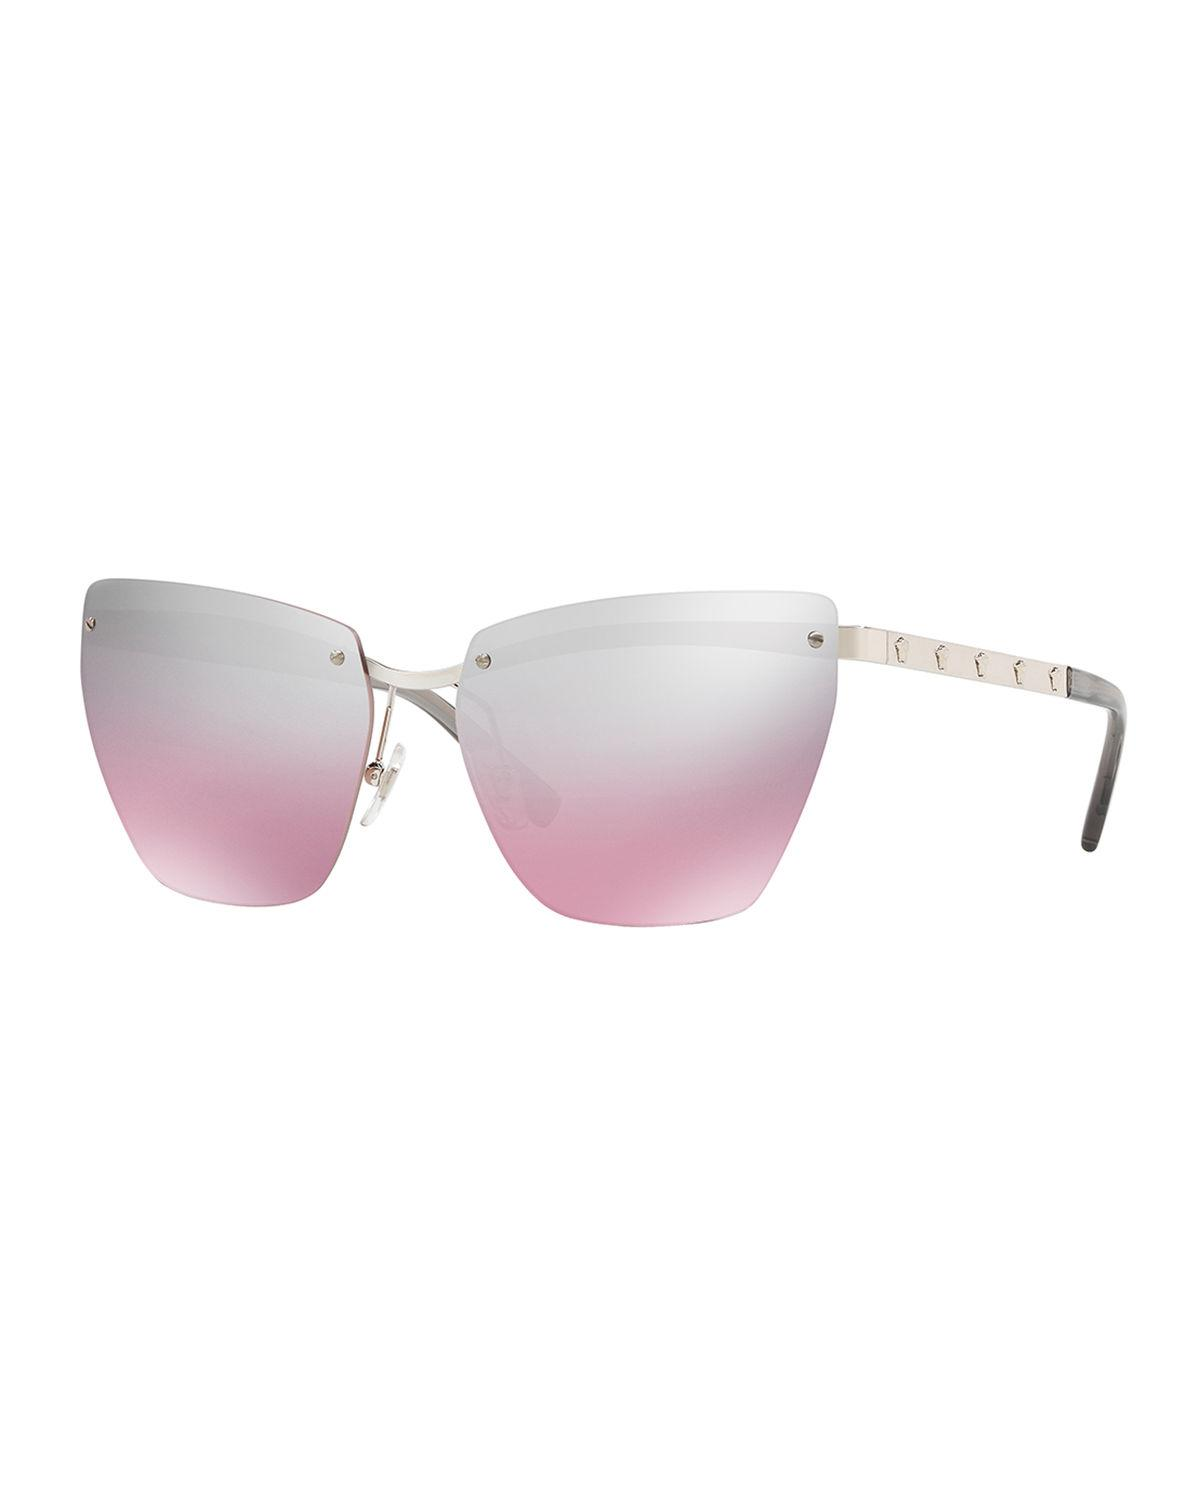 191b0506057 Versace rimless cat eye sunglasses in polished metal. Lens bridge temple  (in mm)  58-14-140. Mirrored lenses with screws at front. Adjustable nose  pads.